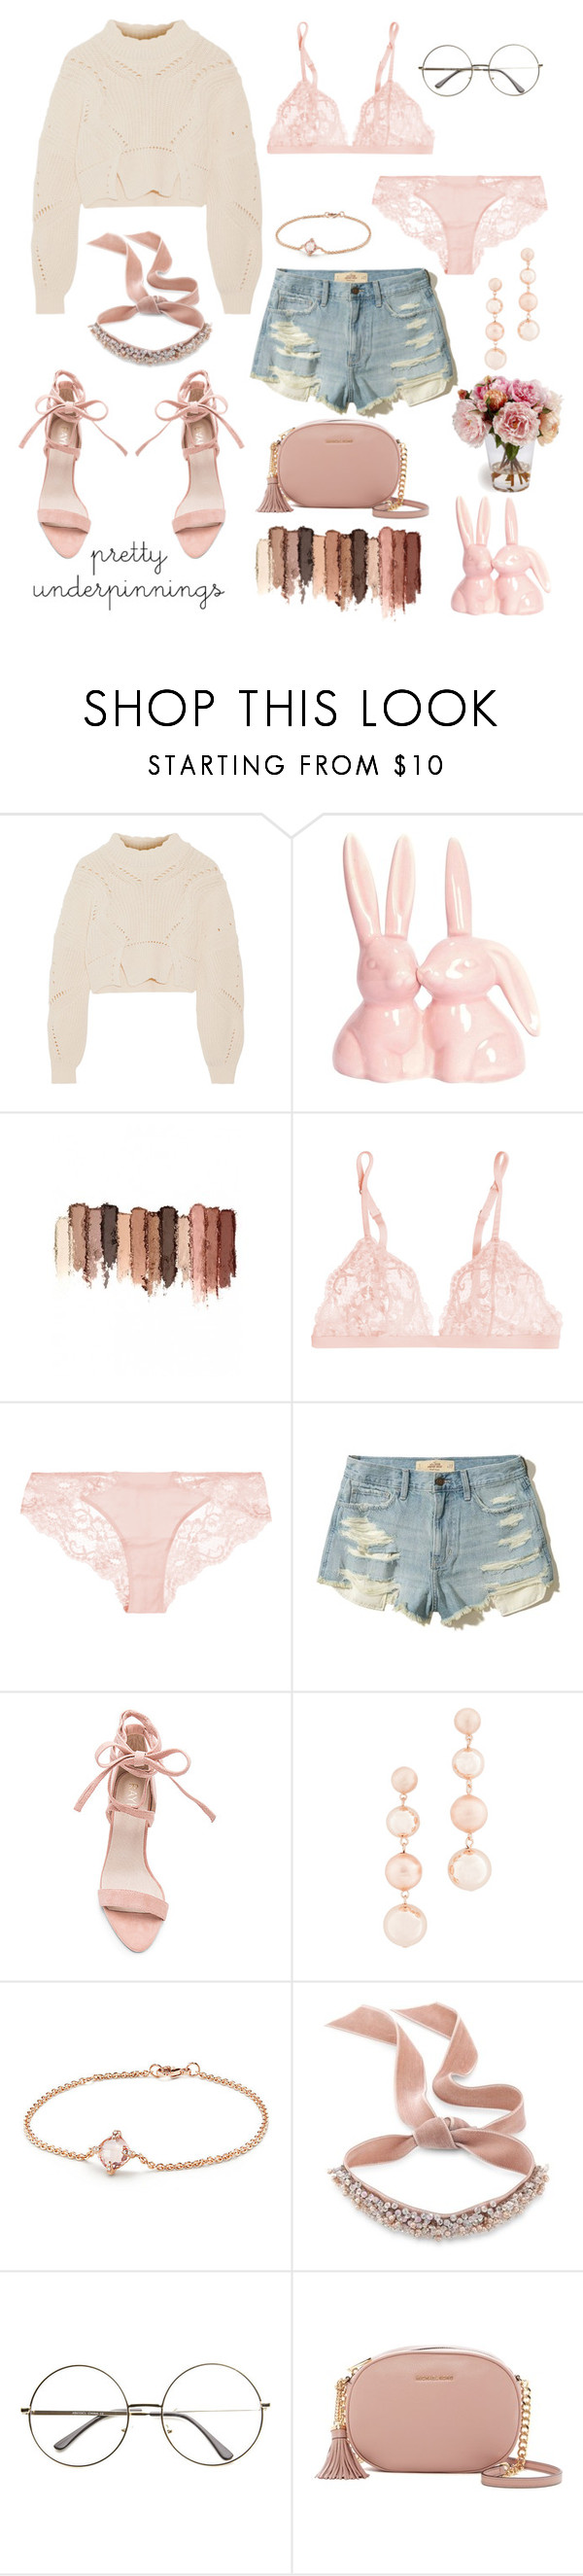 """Untitled #97"" by jresclovon ❤ liked on Polyvore featuring Isabel Marant, tarte, La Perla, Hollister Co., Rebecca Minkoff, David Yurman, Fallon and MICHAEL Michael Kors"